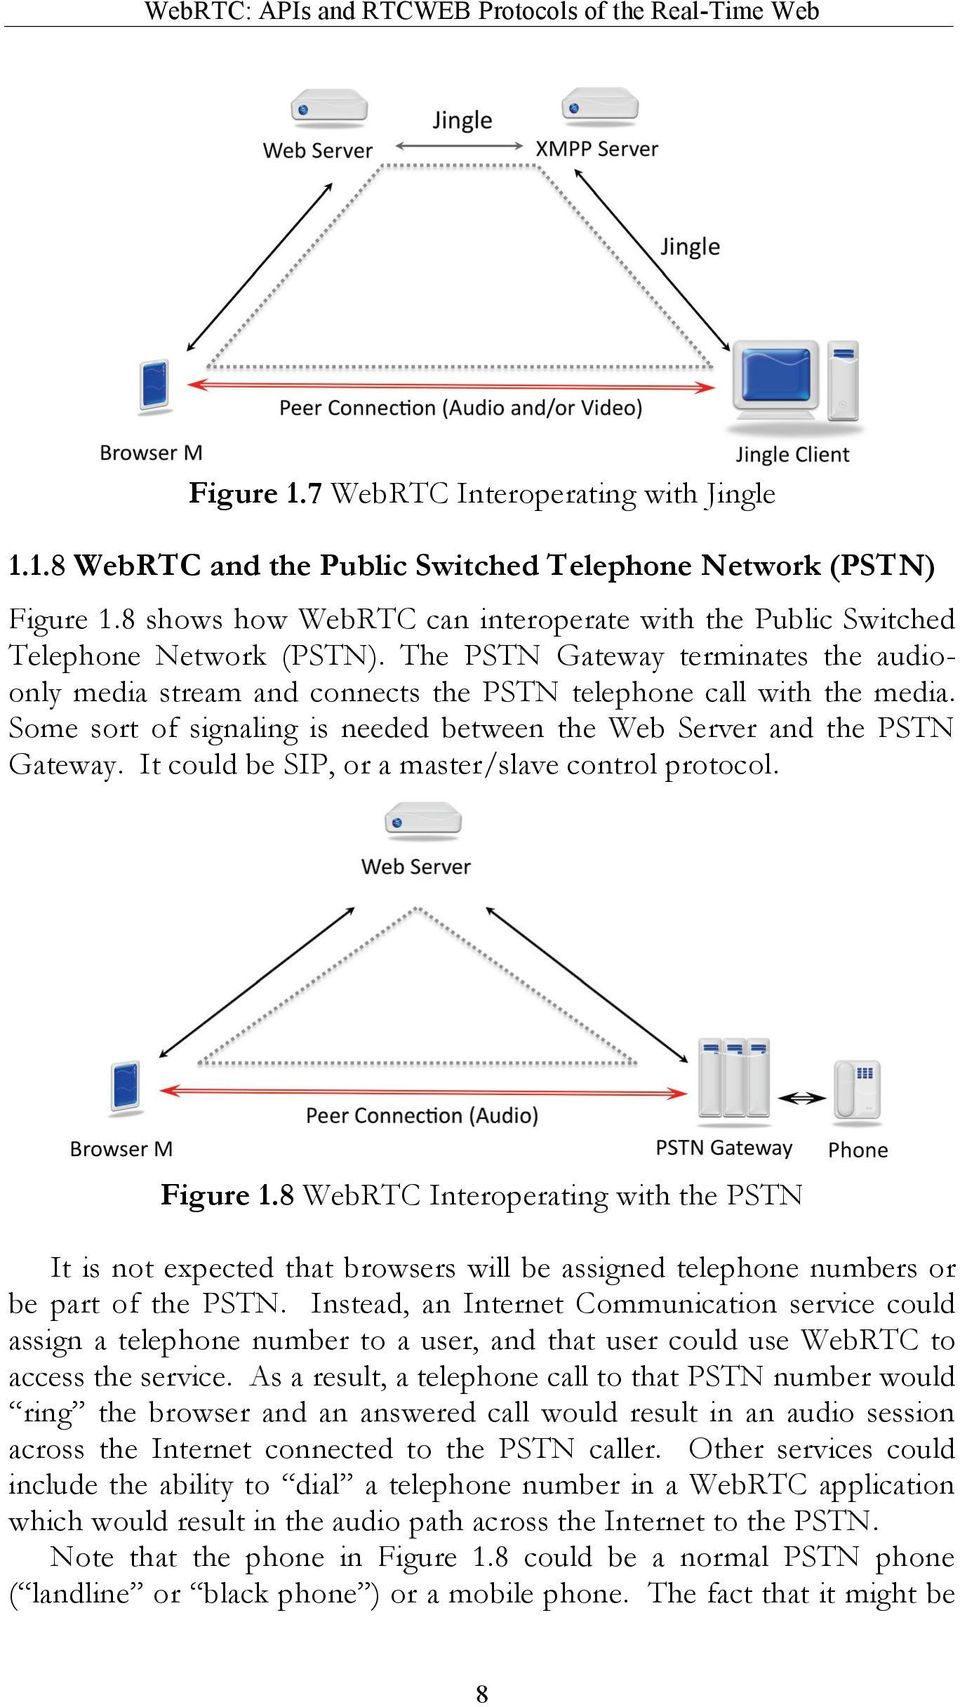 Some sort of signaling is needed between the Web Server and the PSTN Gateway. It could be SIP, or a master/slave control protocol. Figure 1.